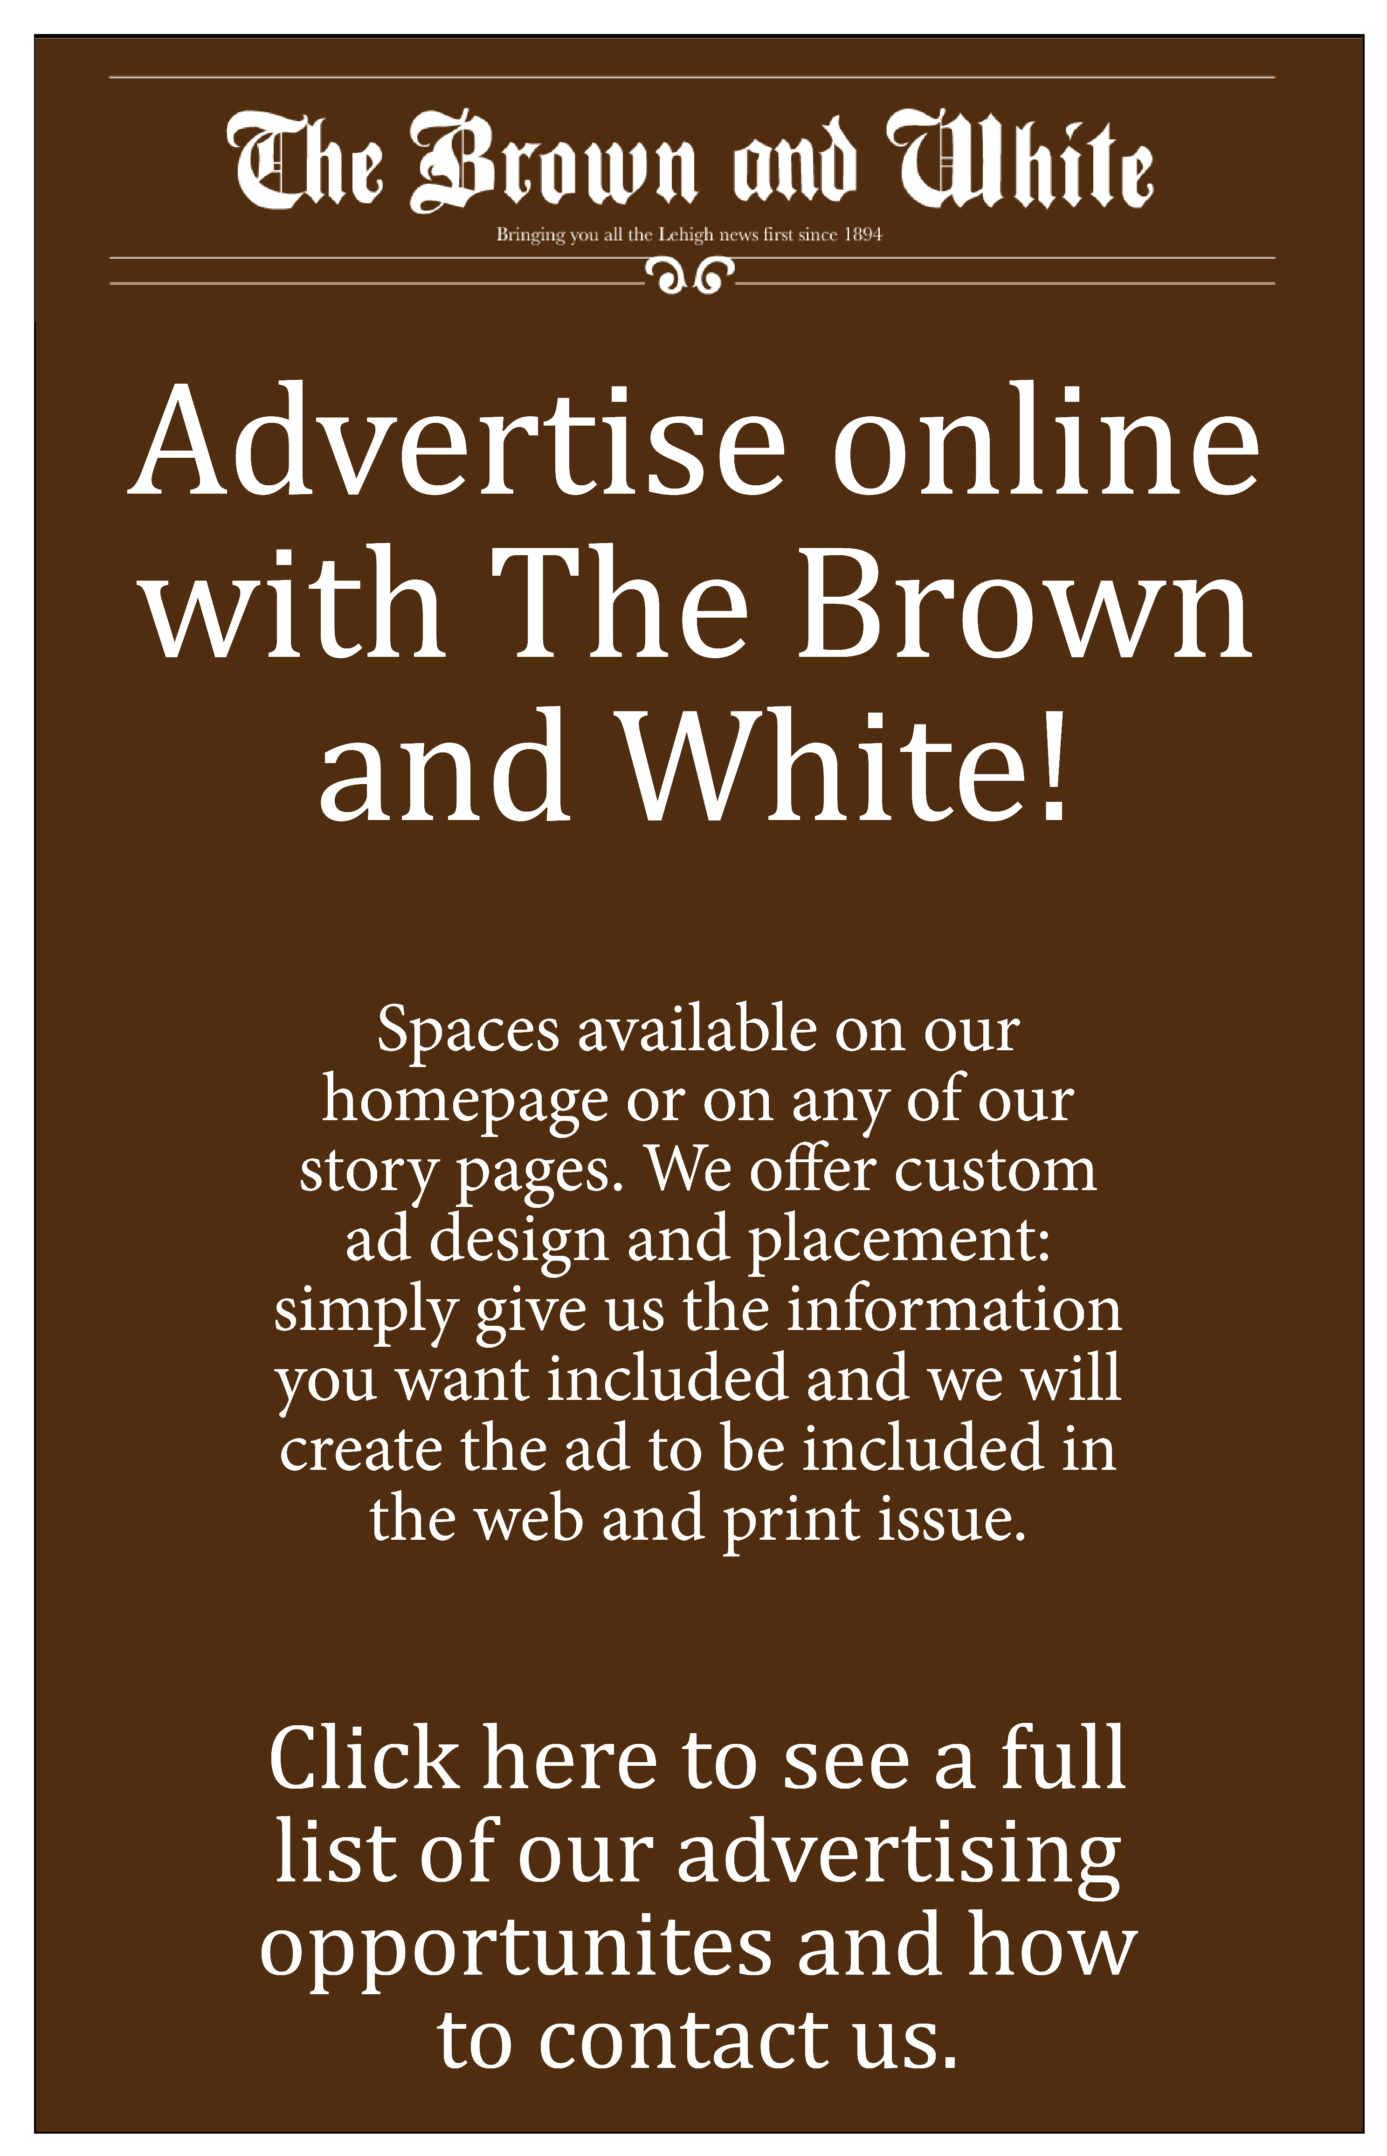 Brown and White Online